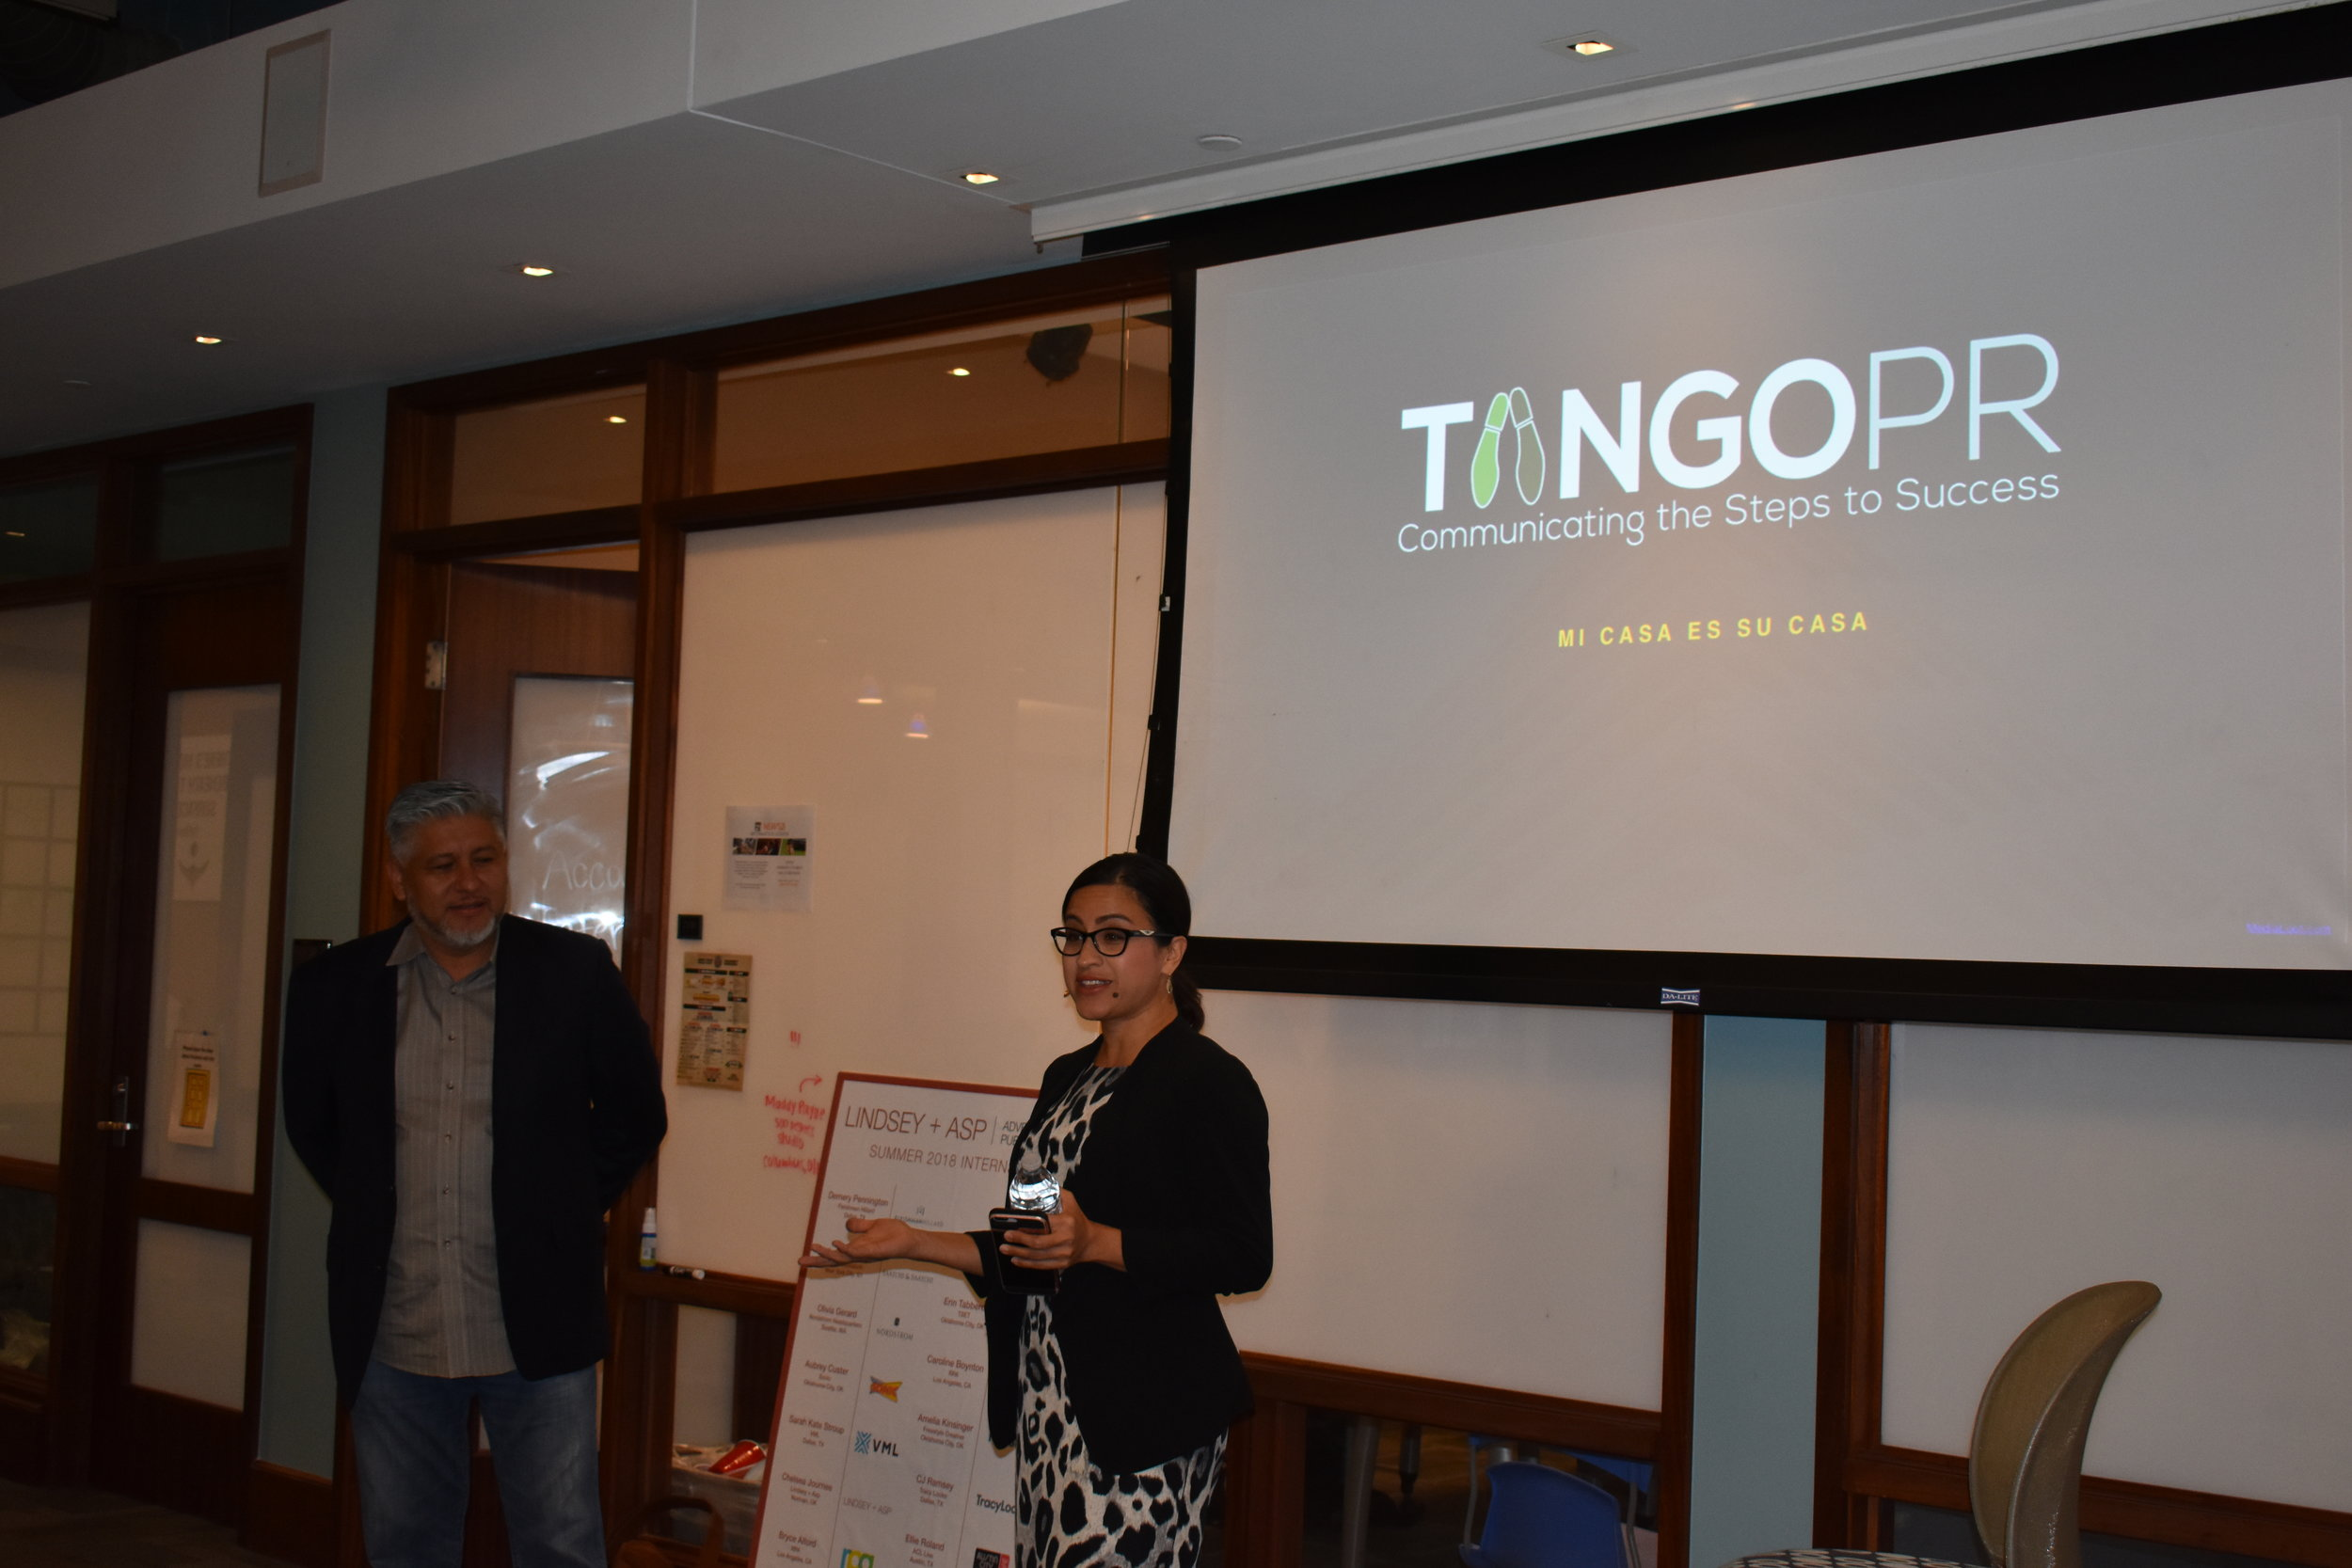 Brenda and Jorge explain their roles at Tango PR and the origin of their company.